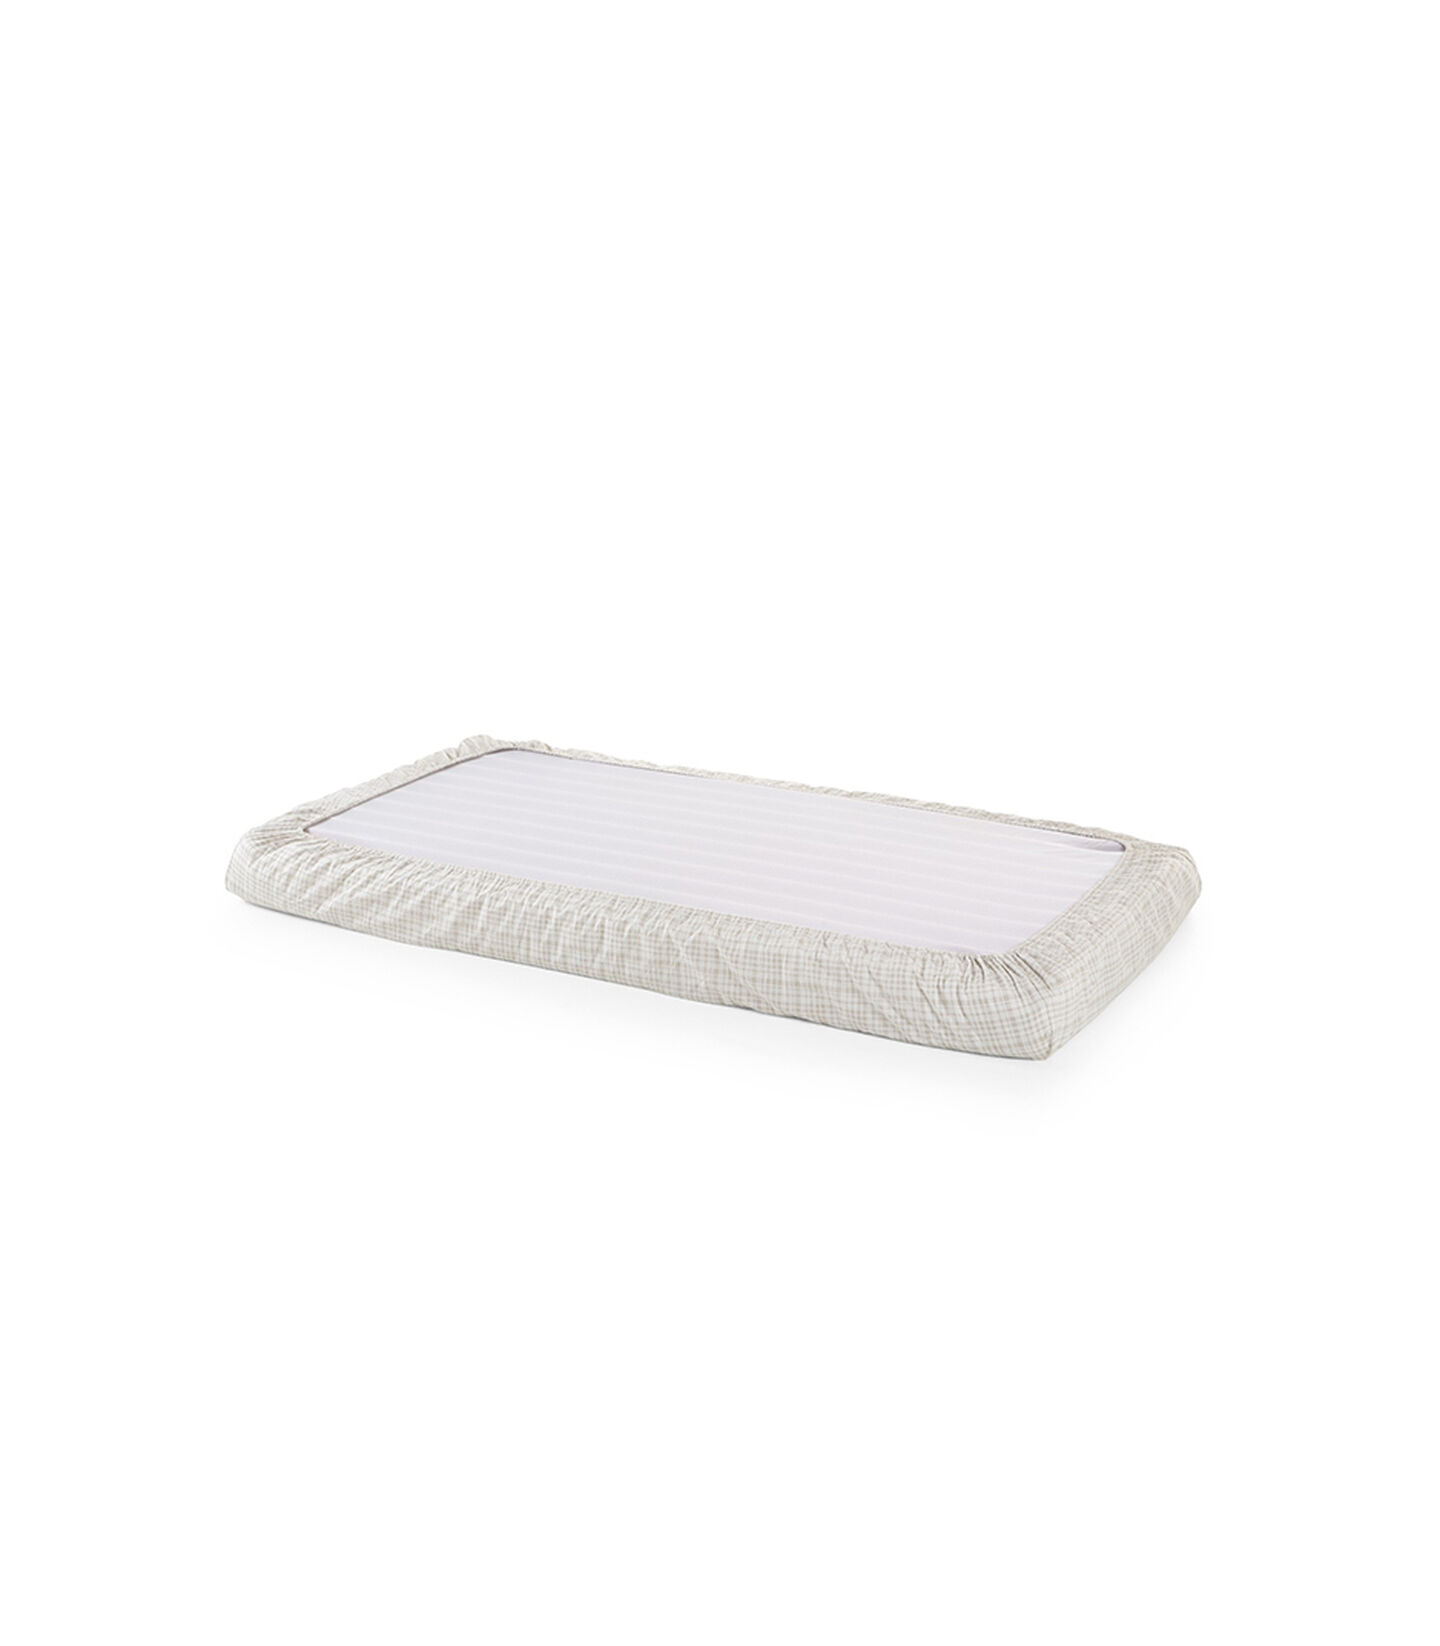 Stokke® Home™ Fitted Sheet. Beige Check. Bottom side.